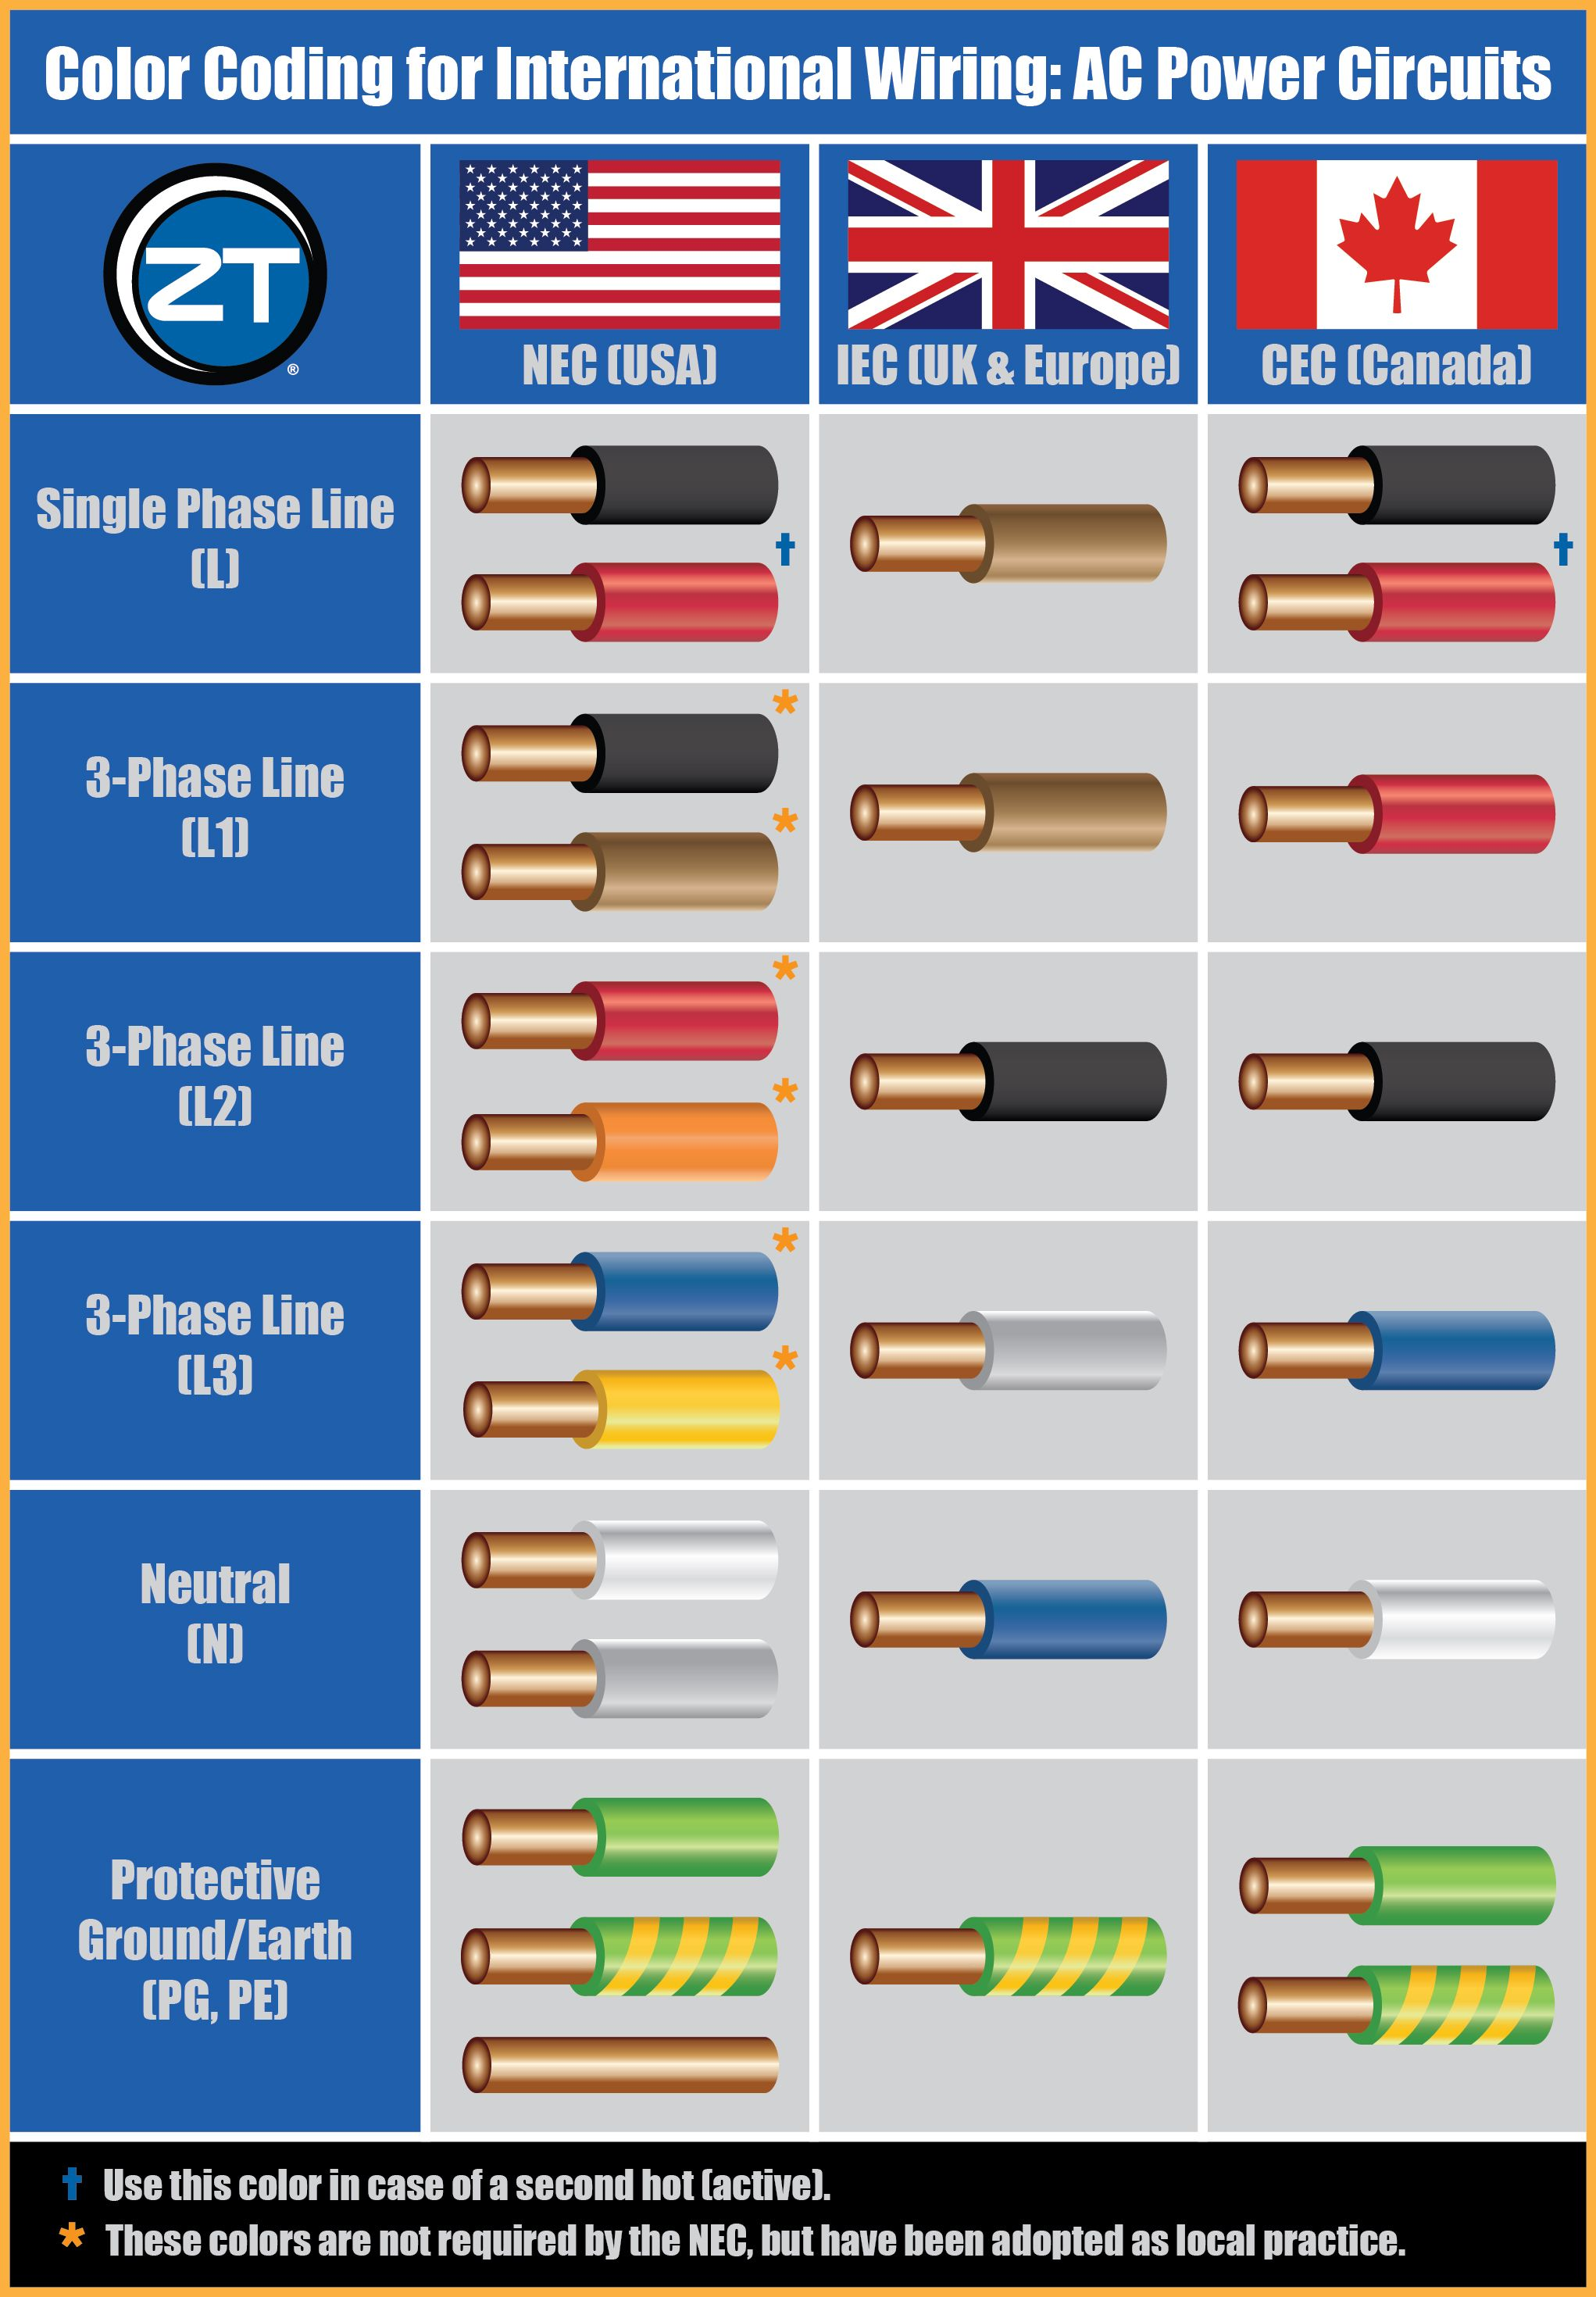 Ac Wiring Color Code Electrical Diagrams Forum Circuits Guide To Coding For International Rh Pinterest Com Electric Wire Usa